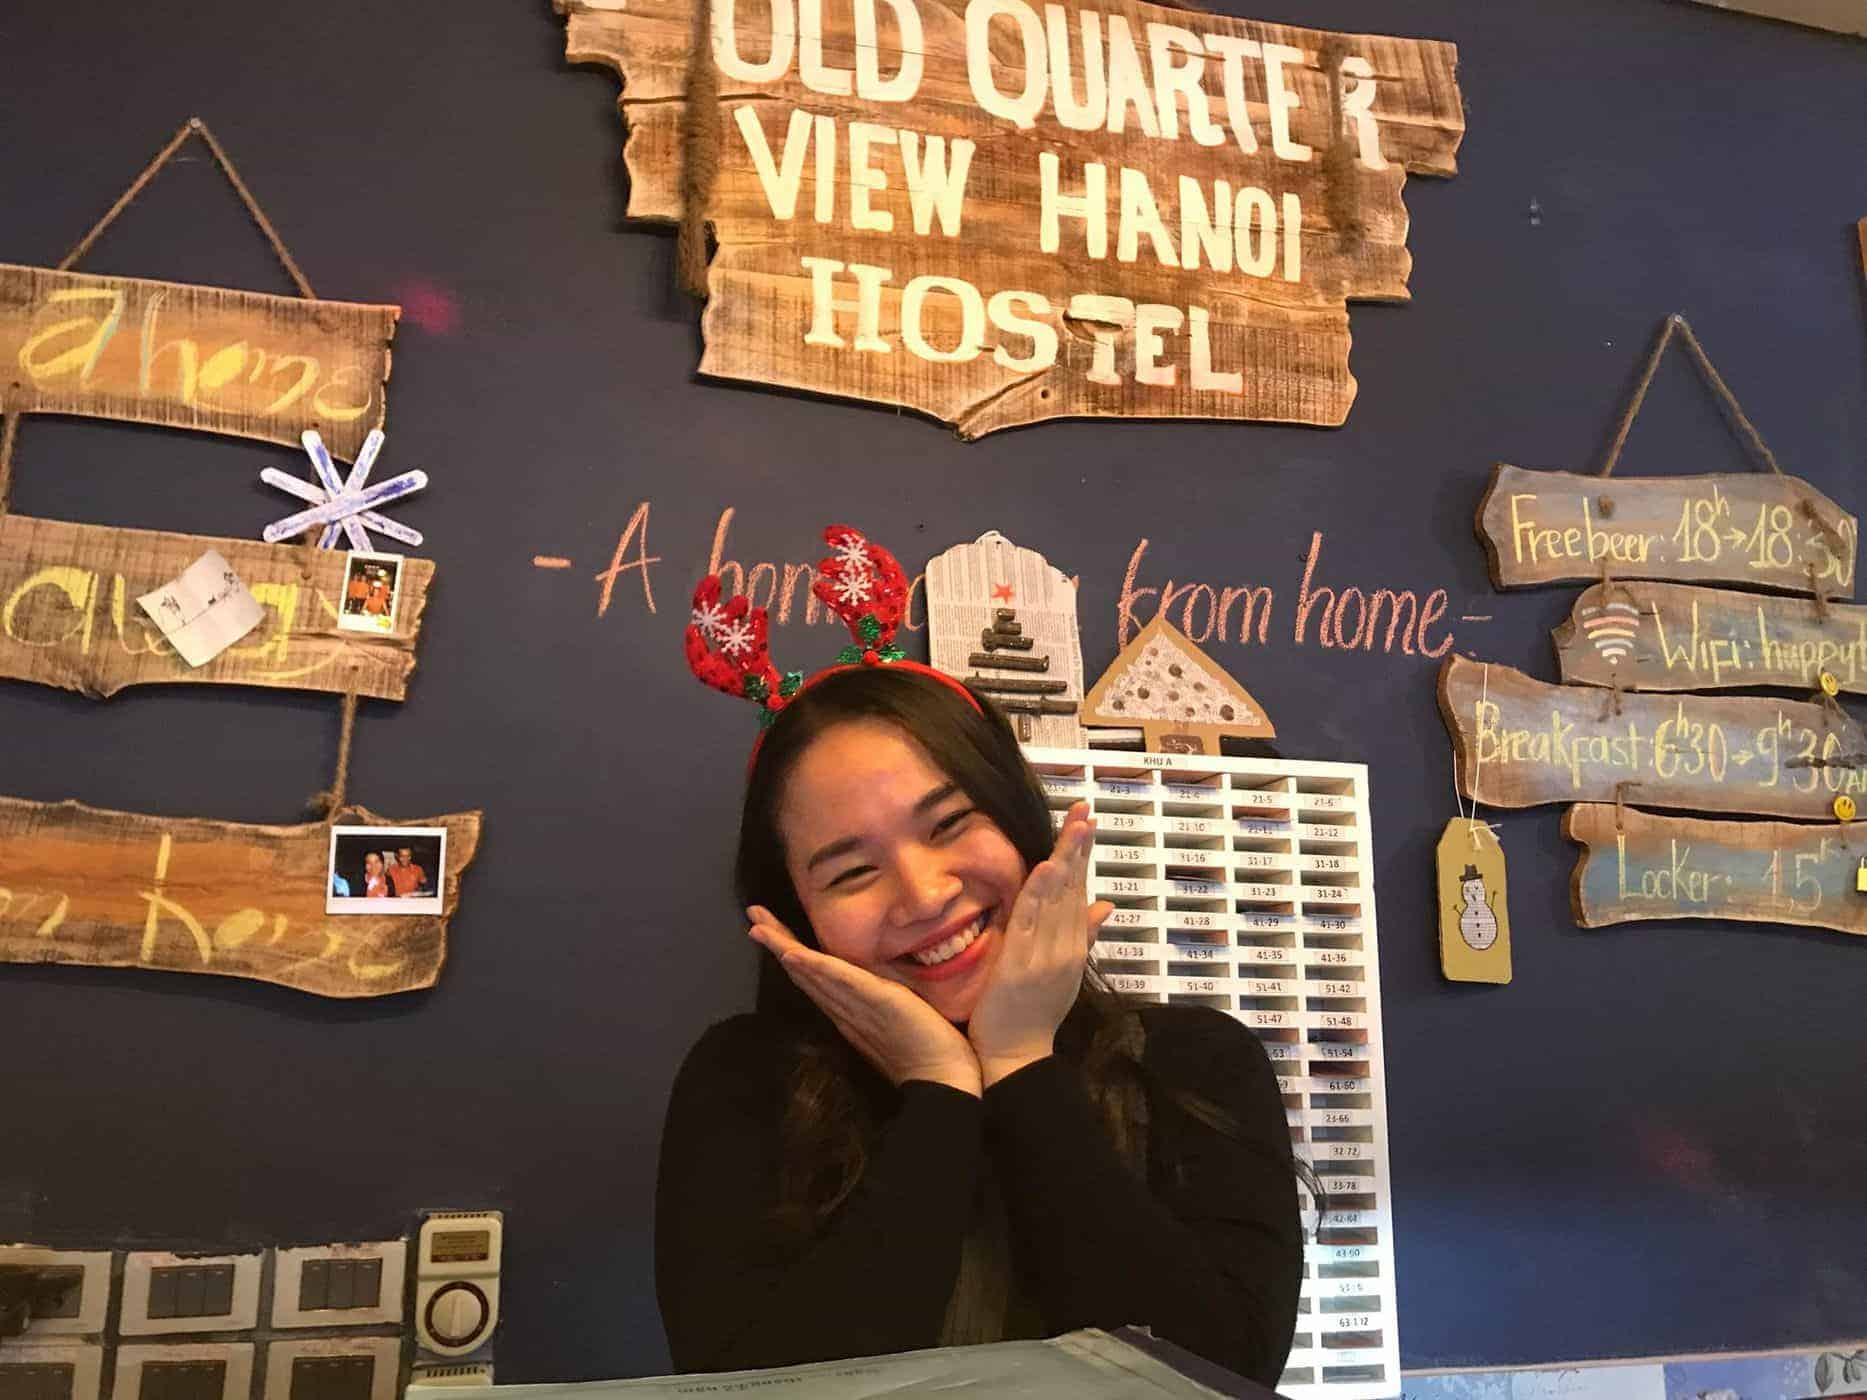 The accommodating and friendly staff of Old Quarter View Hostel makes ones stay more memorable - Hanoi, Vietnam.